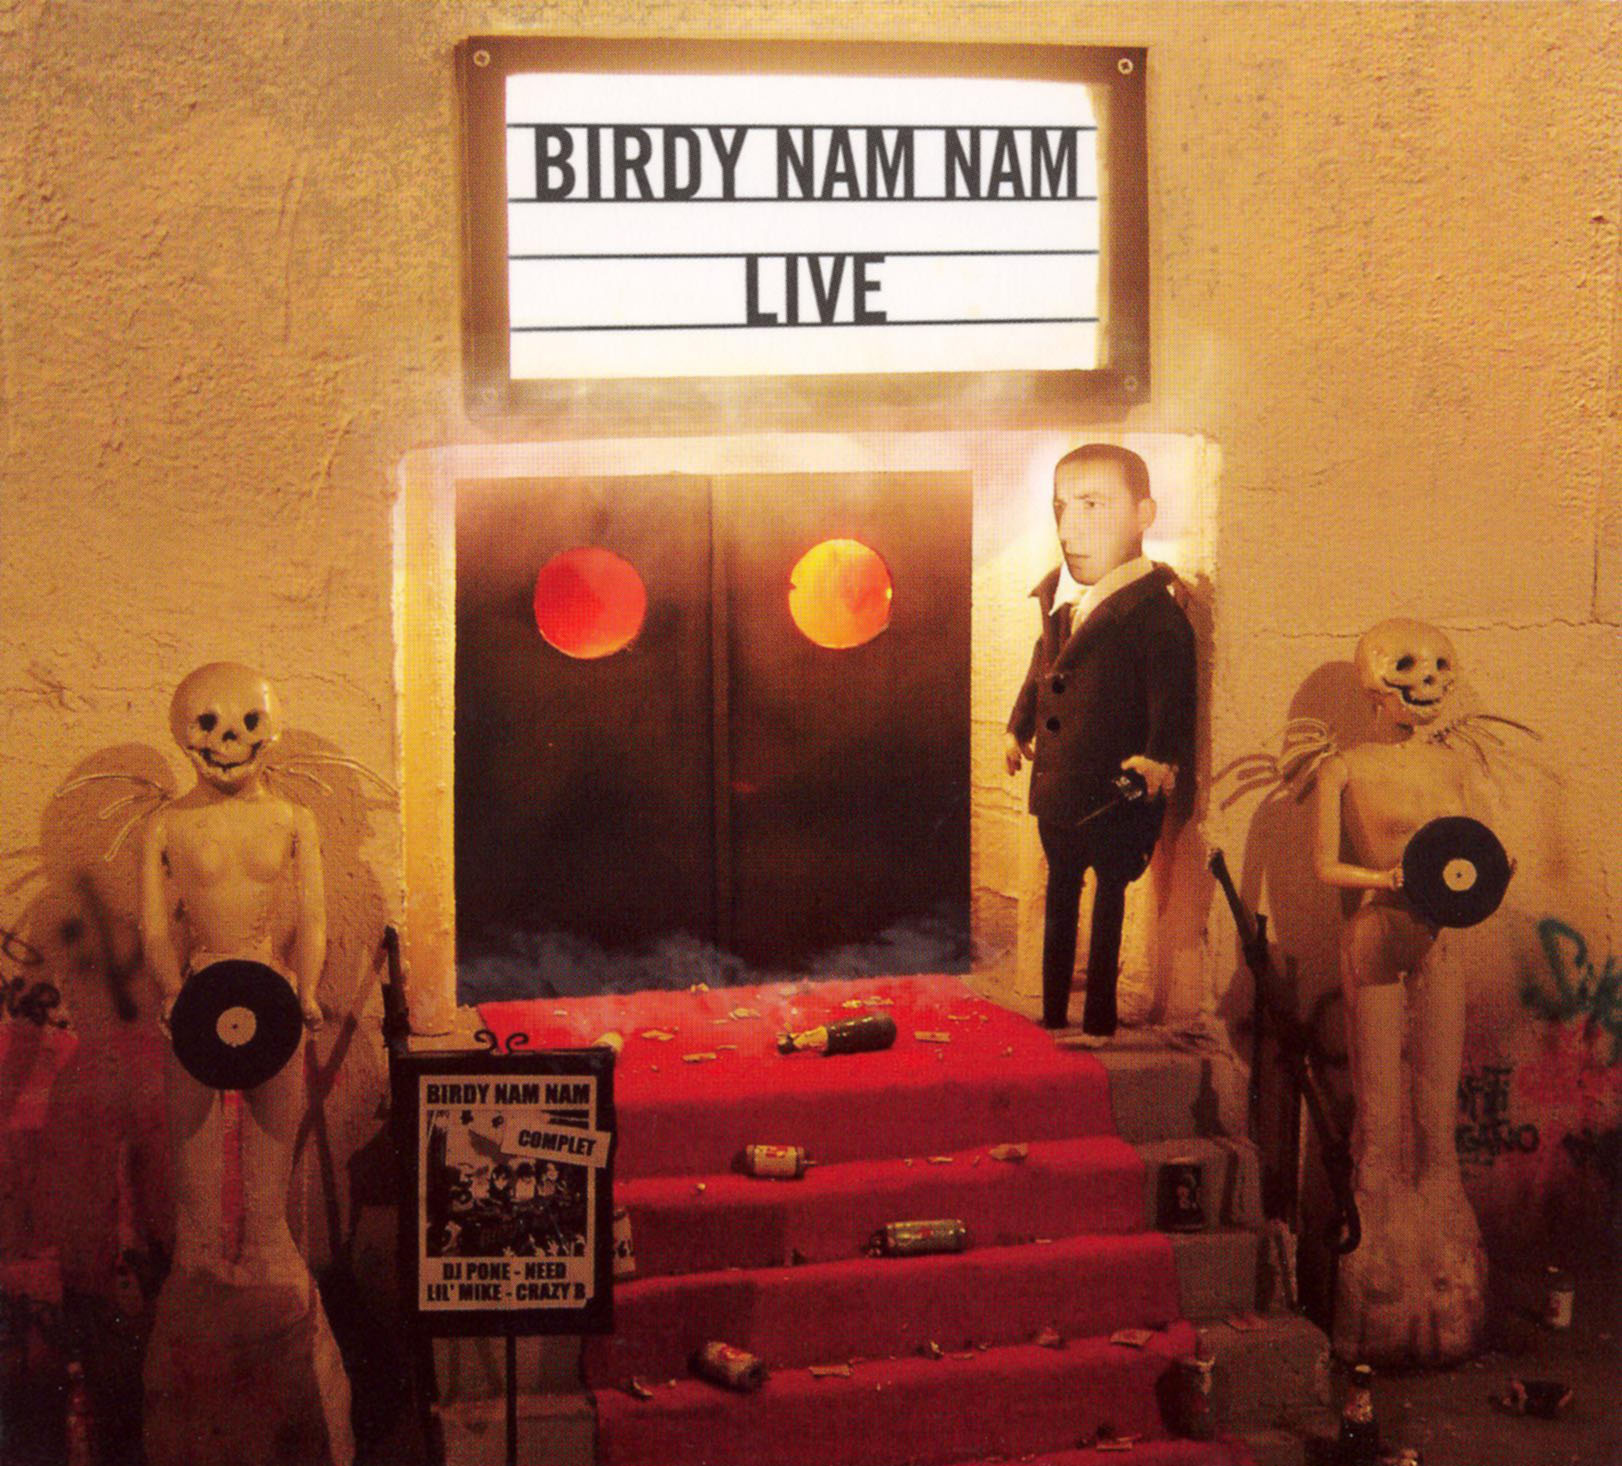 birdy nam nam live releases allmovie. Black Bedroom Furniture Sets. Home Design Ideas